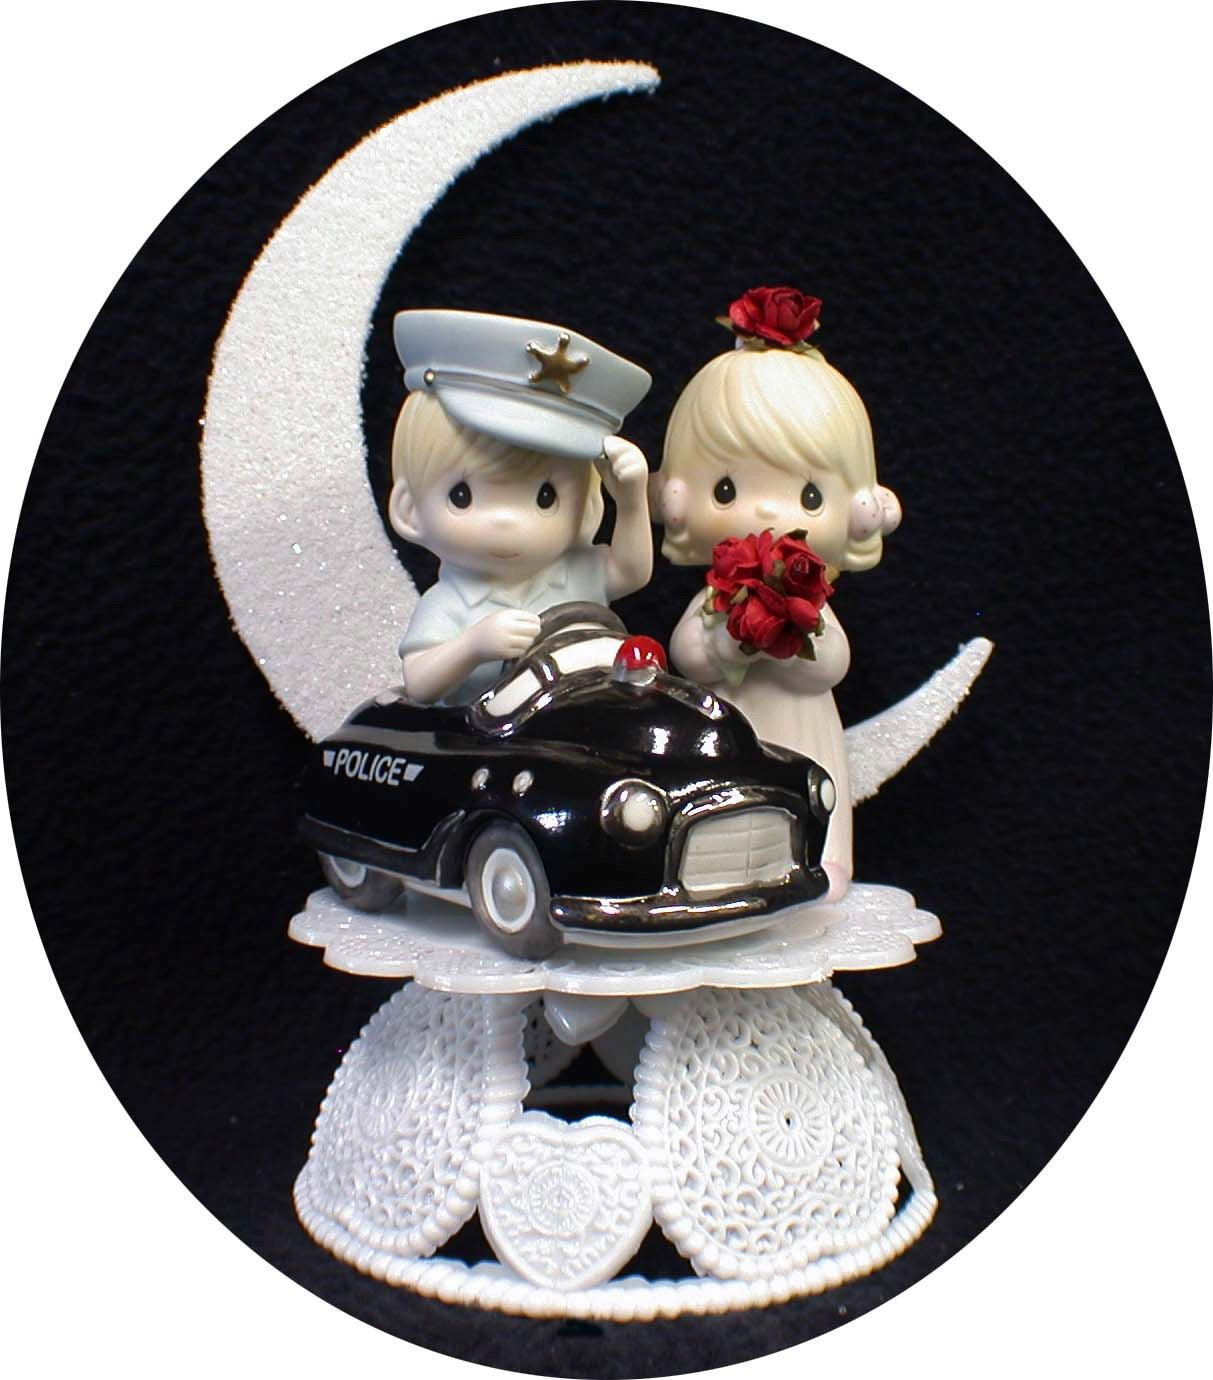 law enforcement wedding bands POLICE car Wedding CAKE TOPPER Policeman w Precious Moments Figurine police Officer